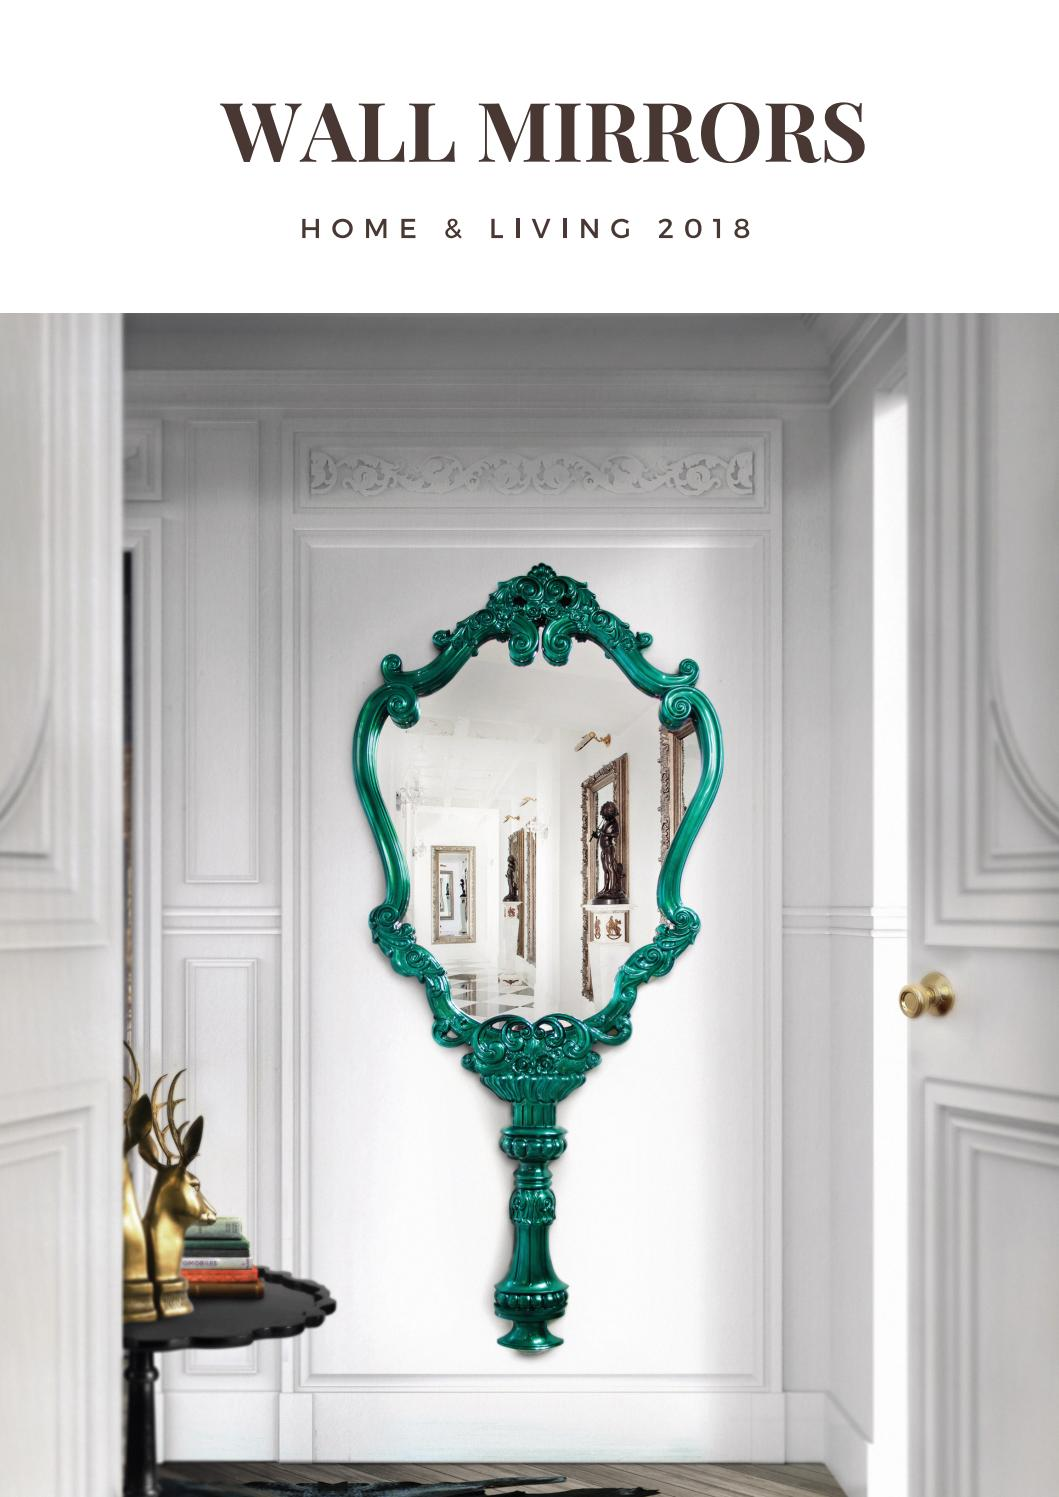 Wall mirrors decor home ideas interior design trends 2018 luxury brands home living by home - Home decor wall mirrors collection ...